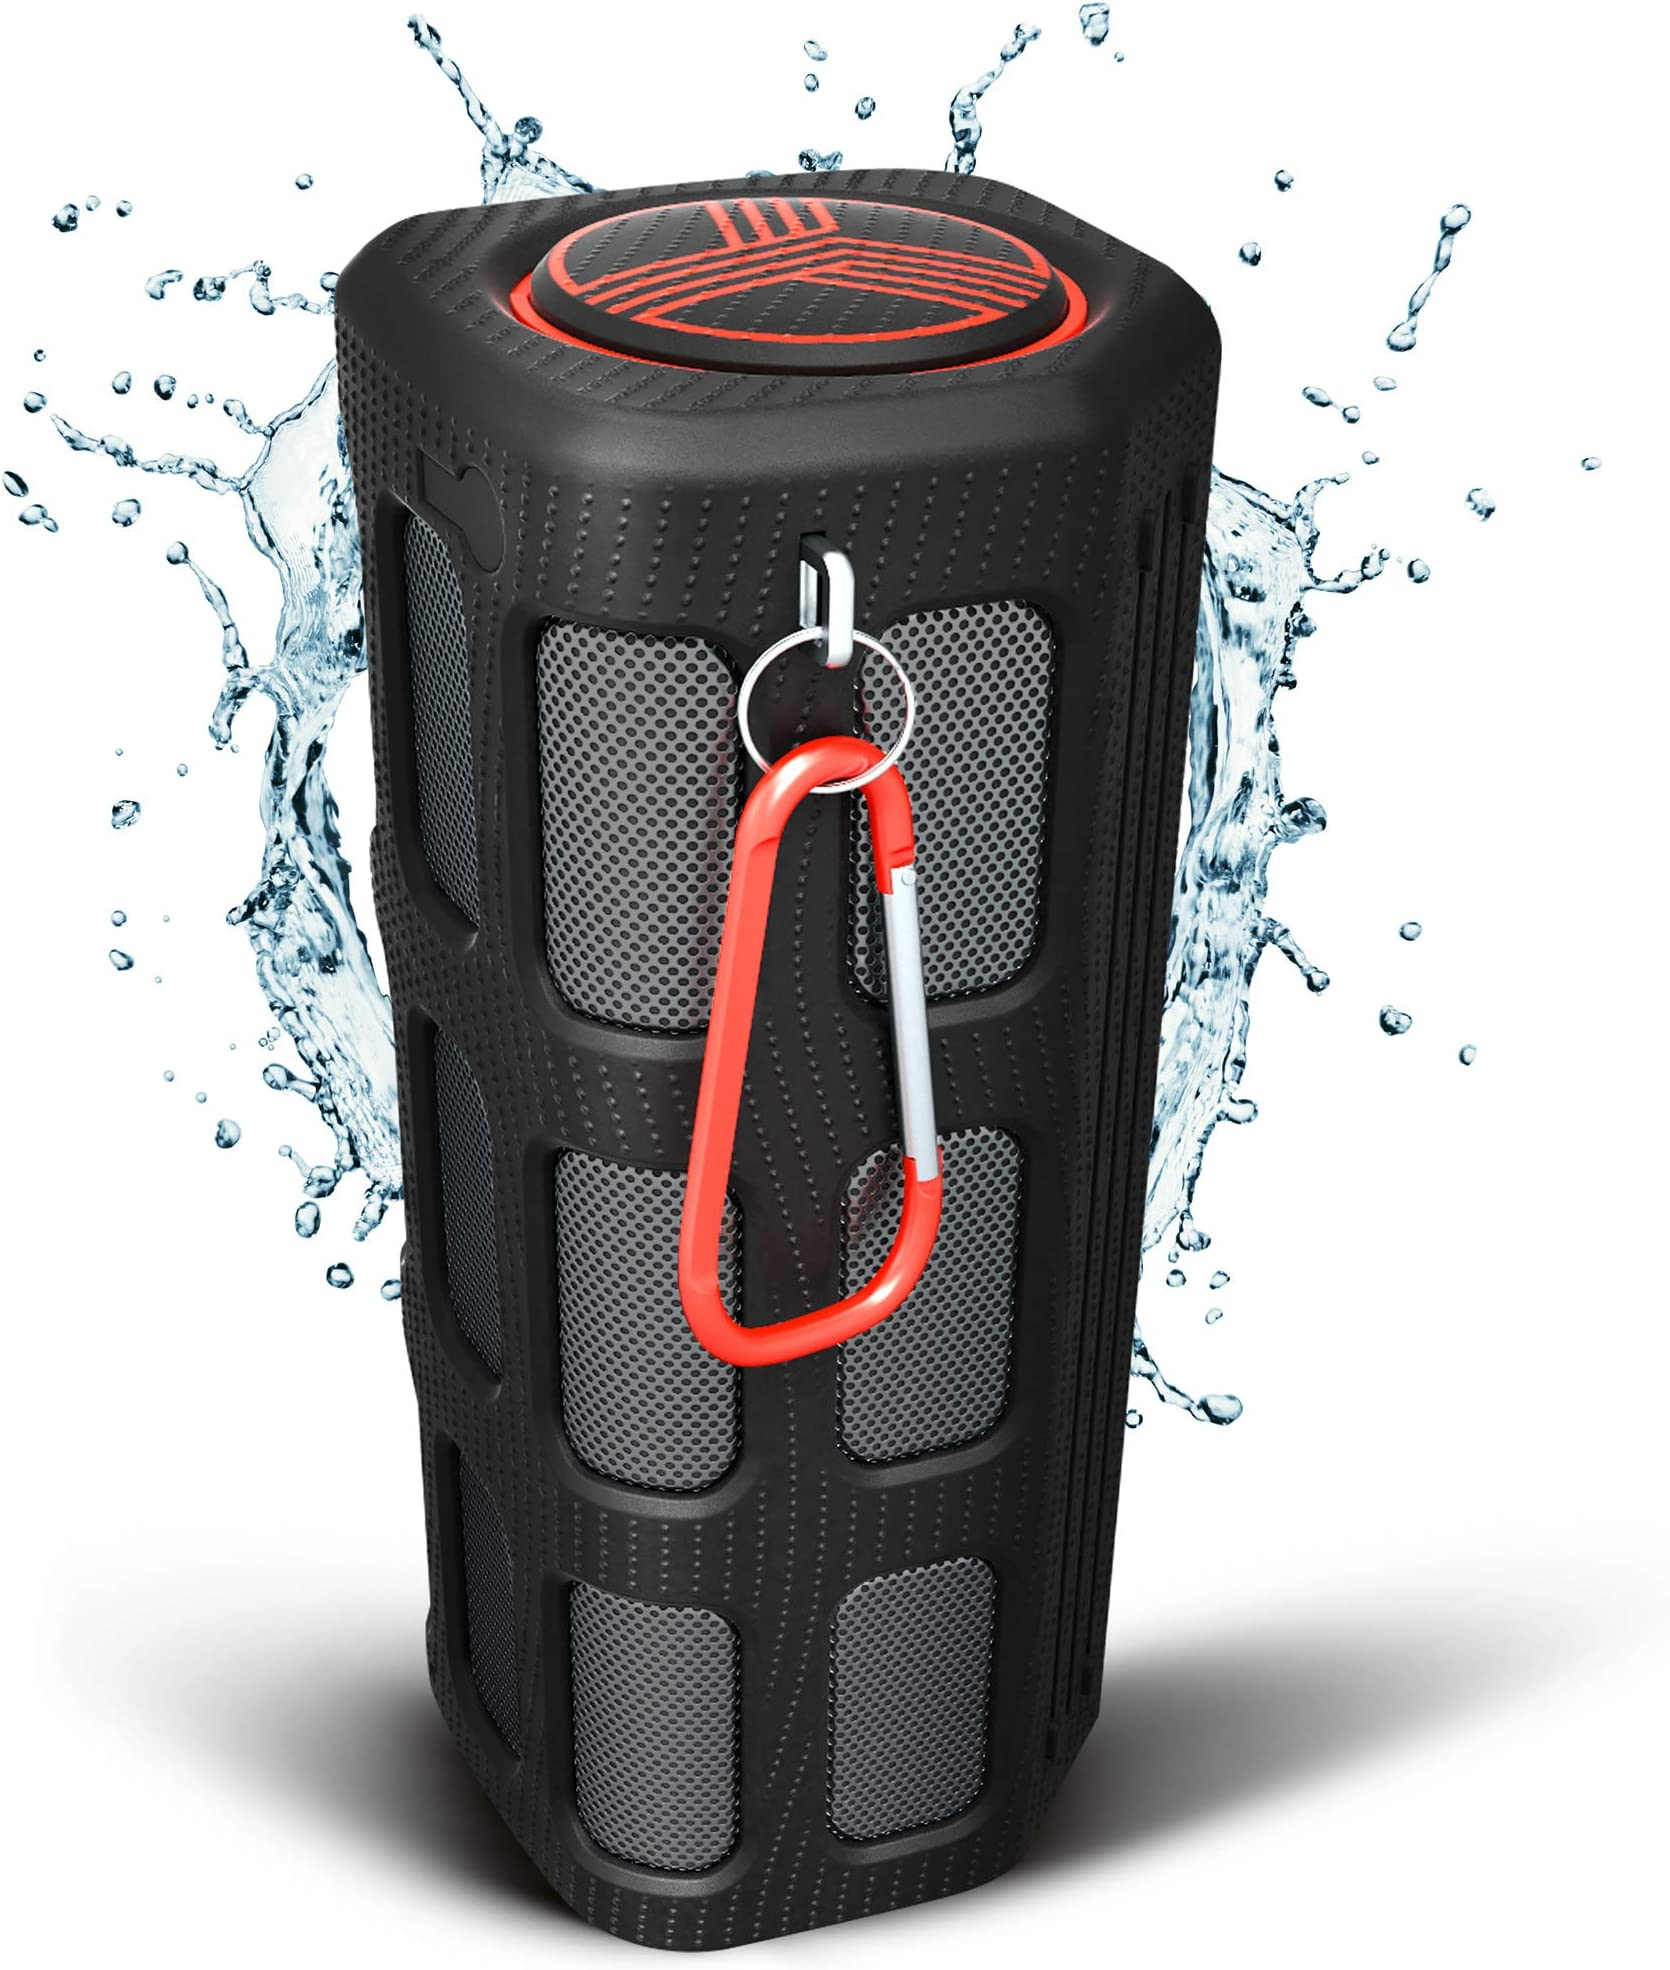 TREBLAB FX100 Waterproof Rugged Bluetooth Speaker - Shockproof, for Outdoors in All Weather, Loud, Built-in 7000mAh Power Bank, Portable Wireless Speaker for Travel, Golf Cart, Bike